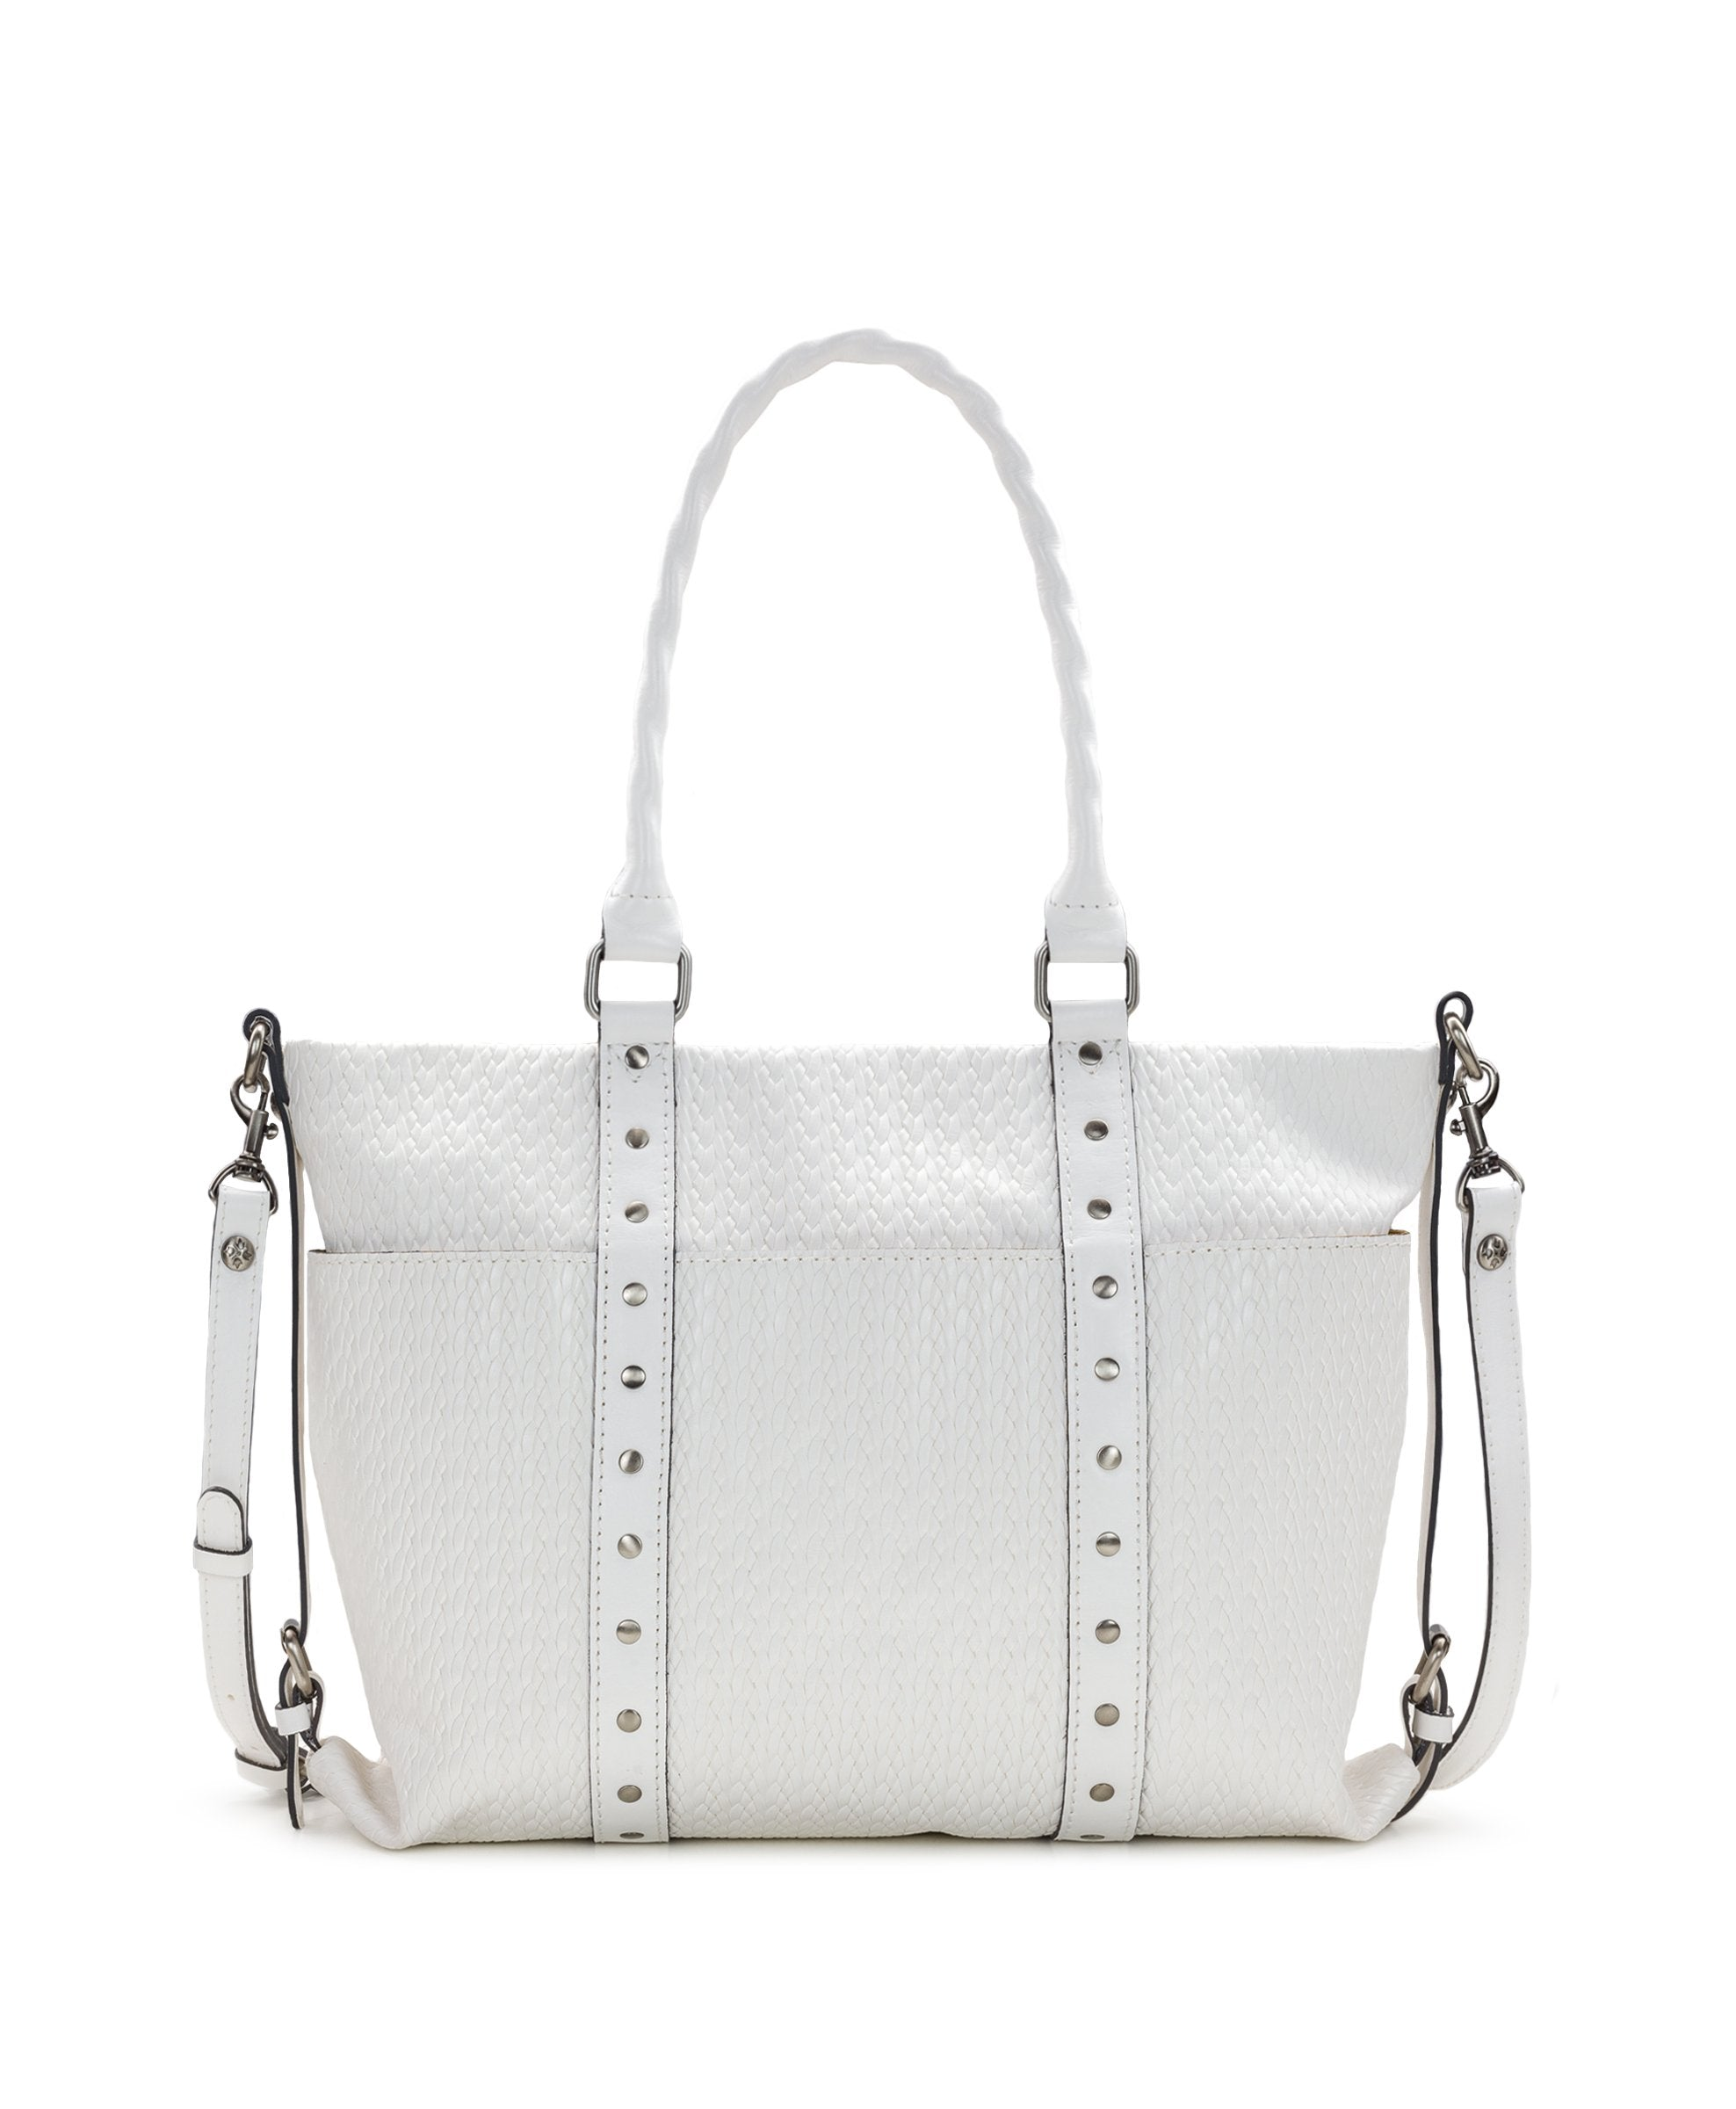 Carducci Pocket Tote - Twisted Woven Embossed - Carducci Pocket Tote - Twisted Woven Embossed